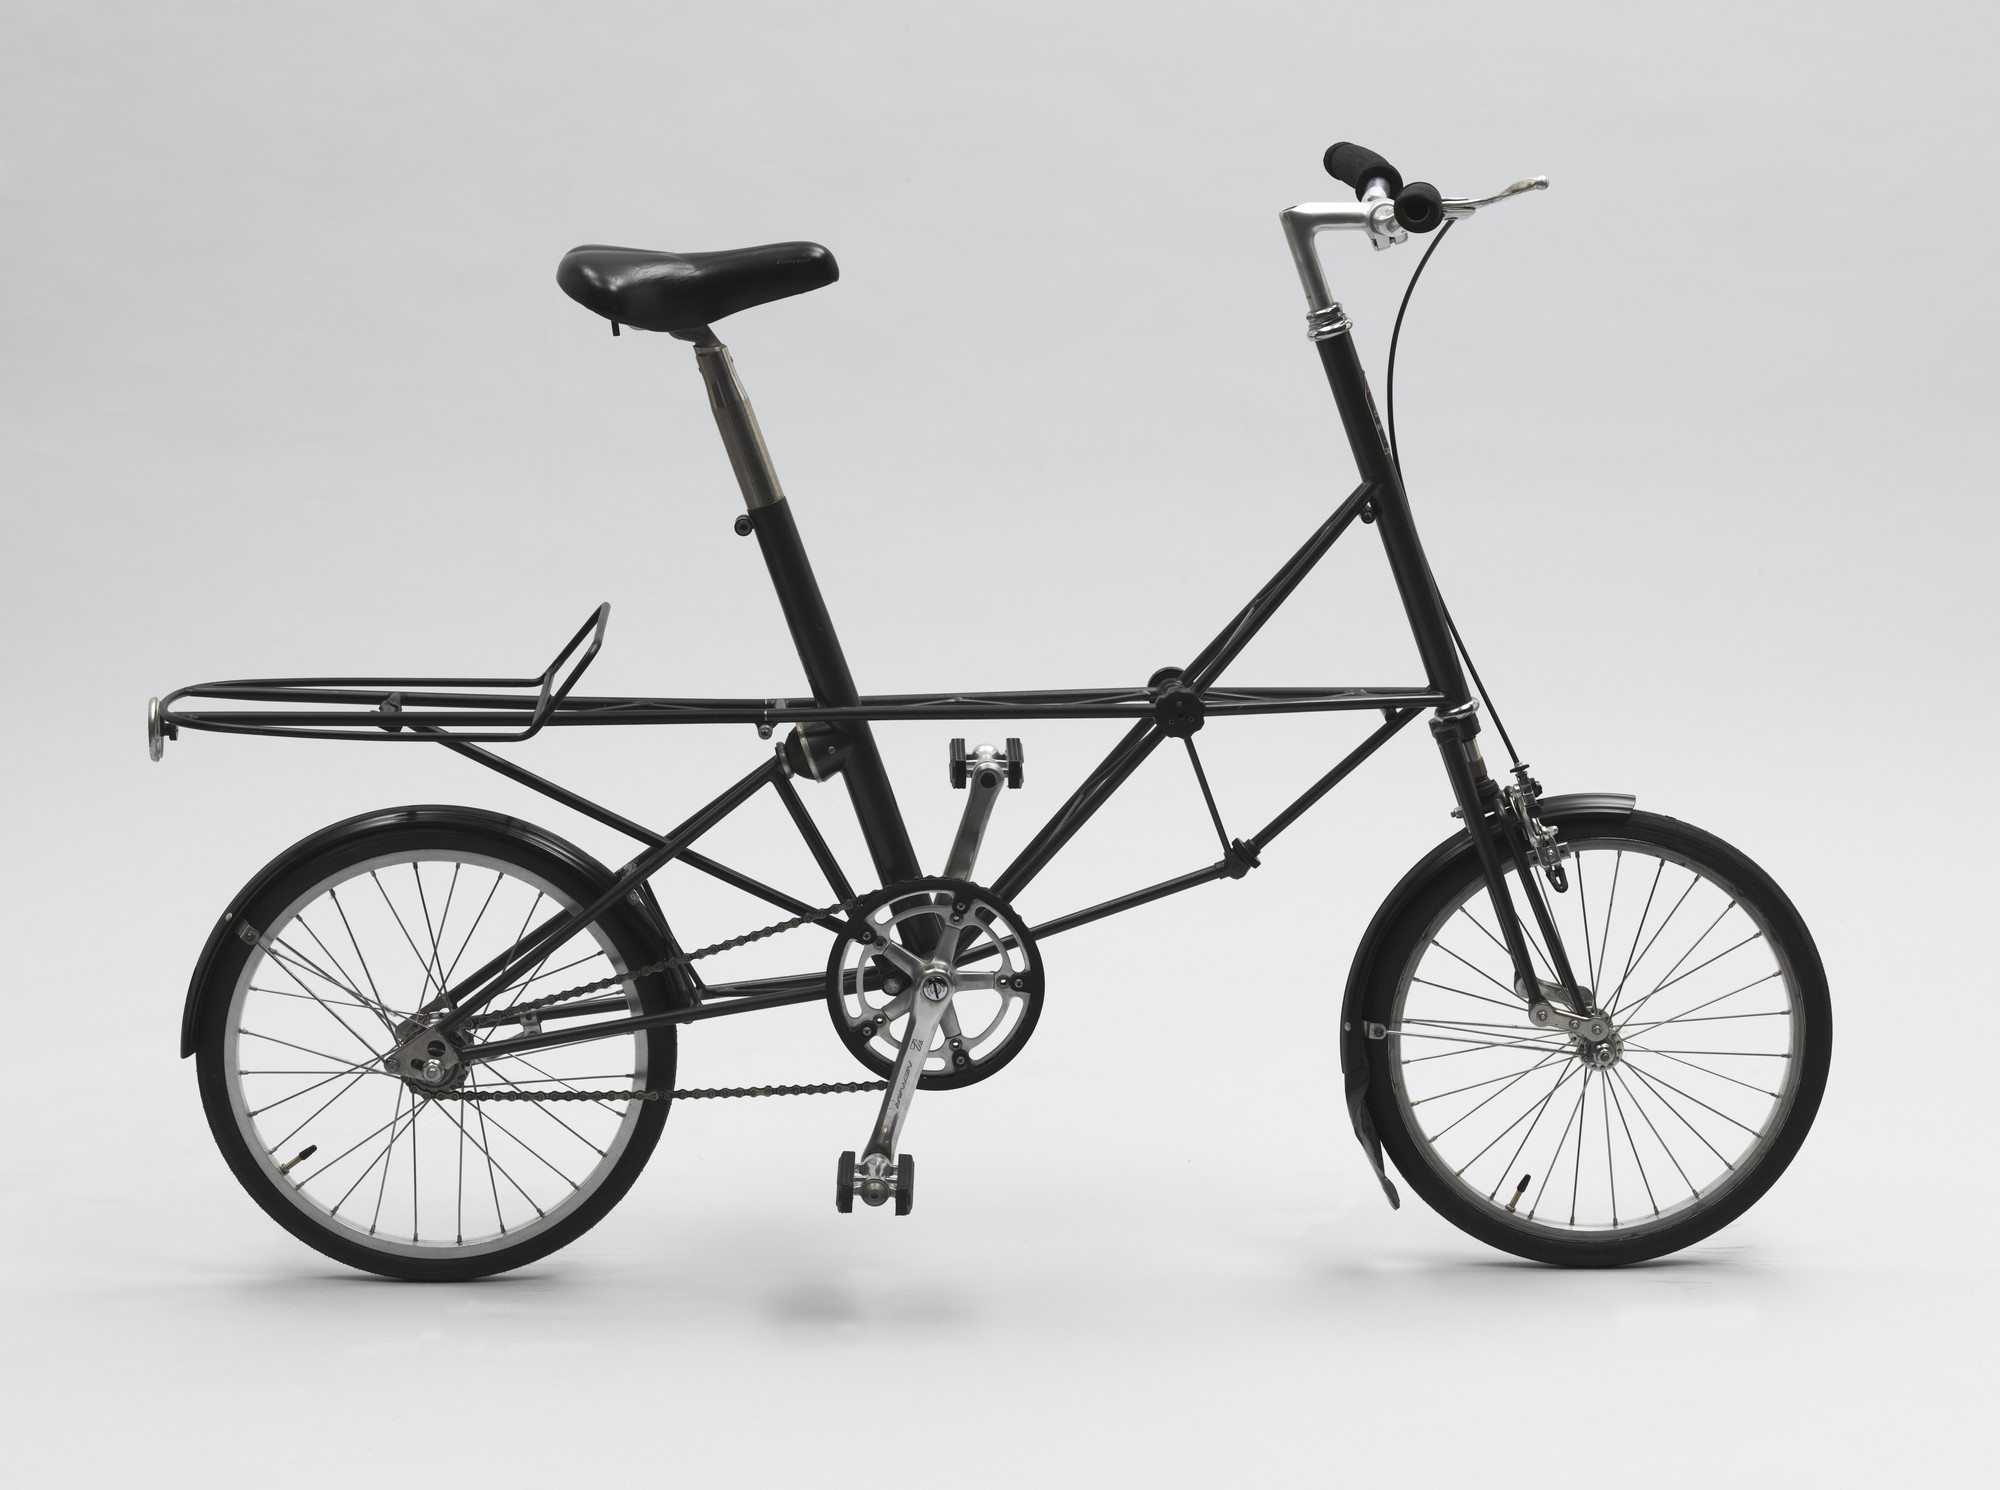 Alex Moulton. AM2 Bicycle. 1983